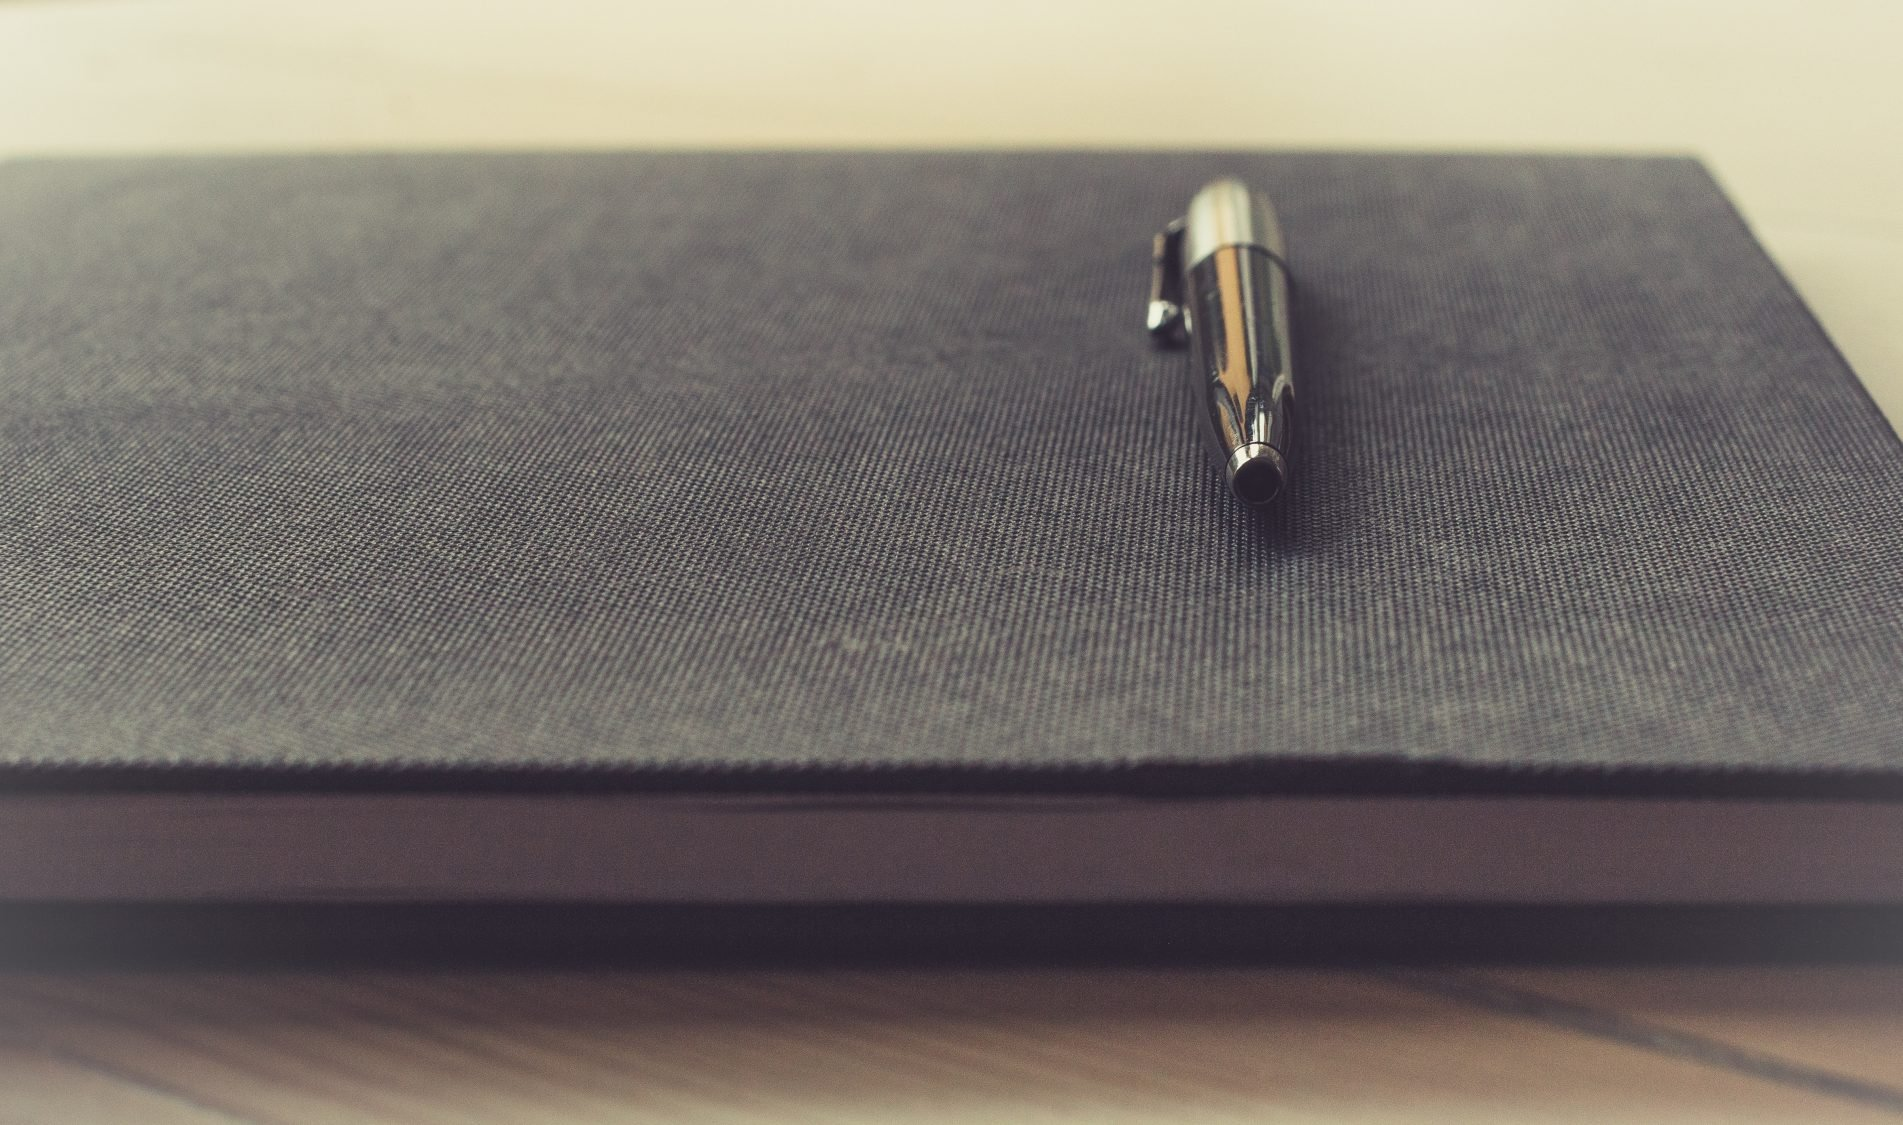 Book and Pen, law firm